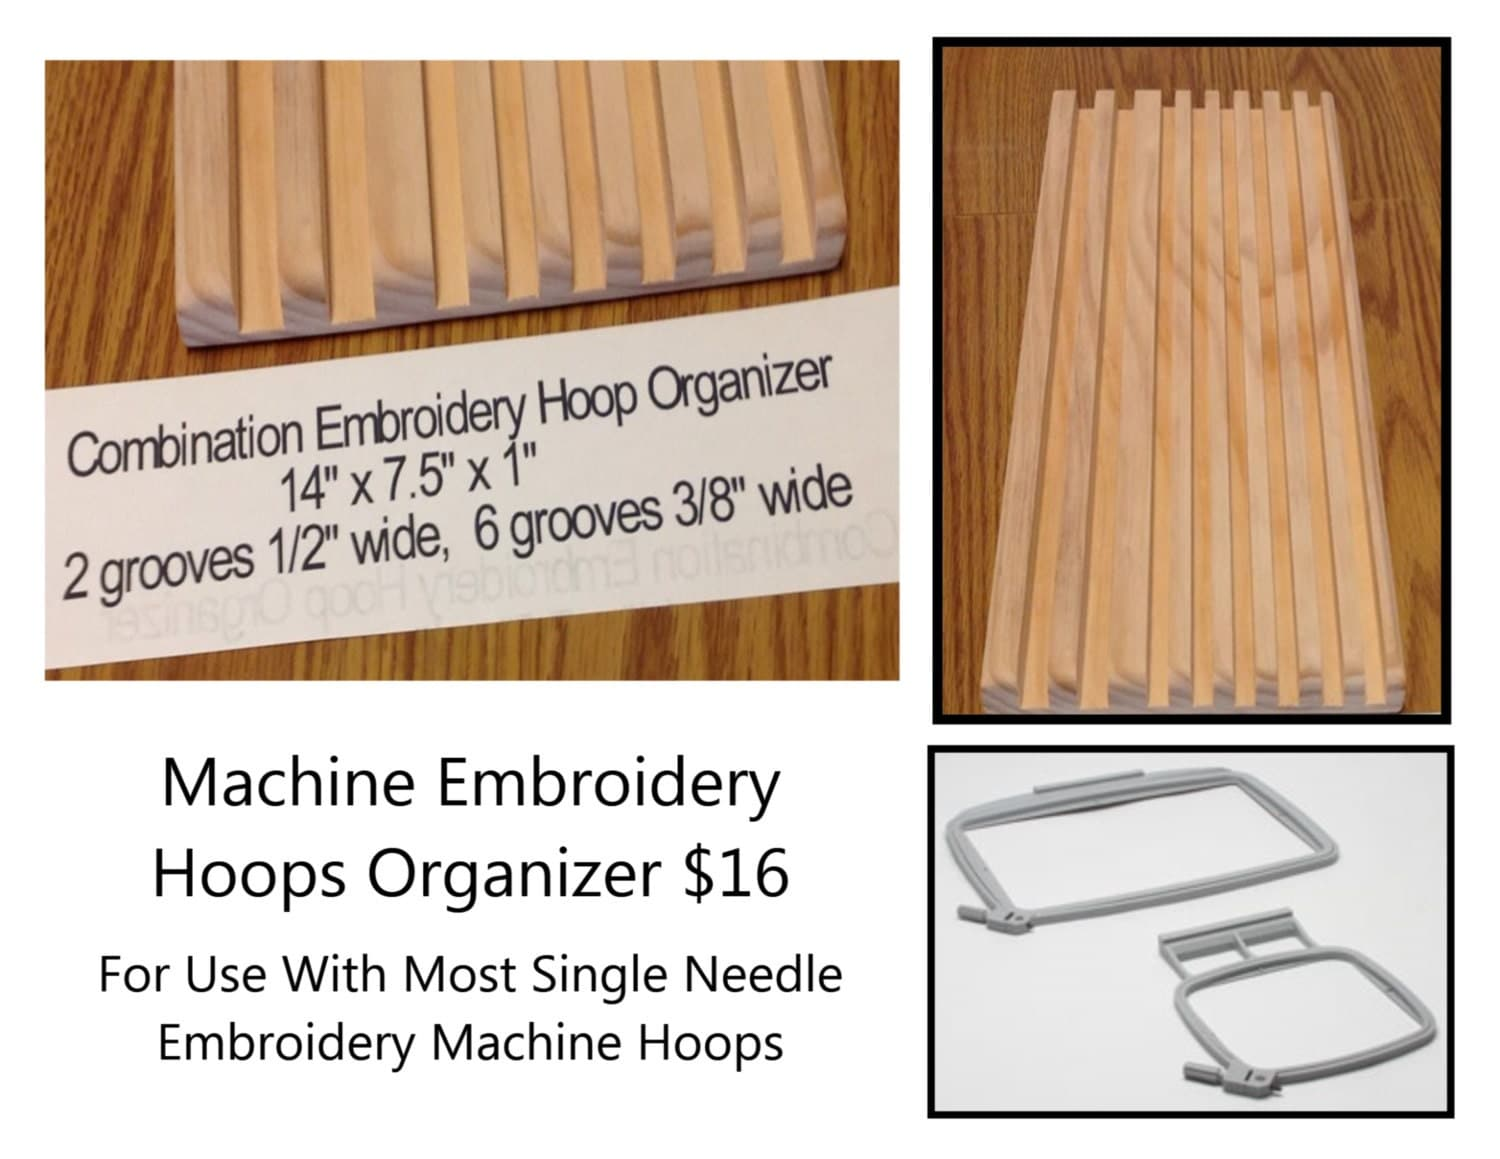 Combination embroidery hoops organizer x